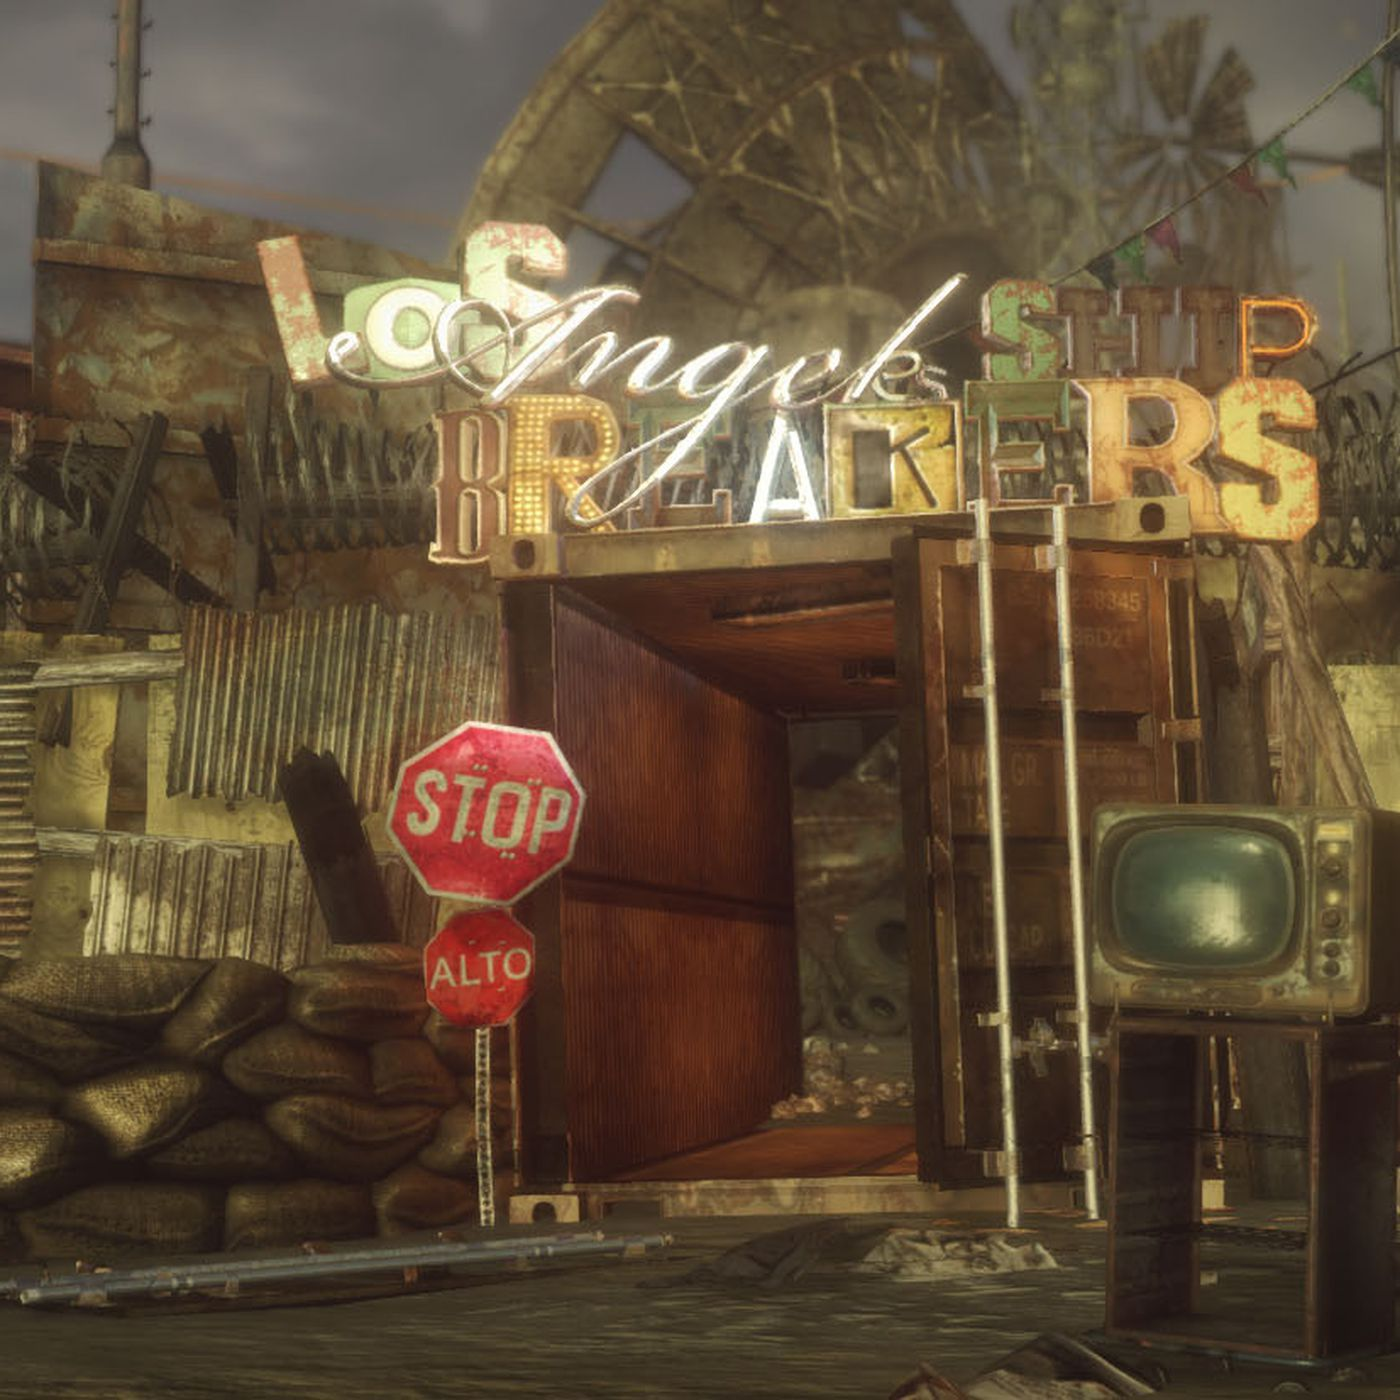 Fallout: New California mod released for folks who crave